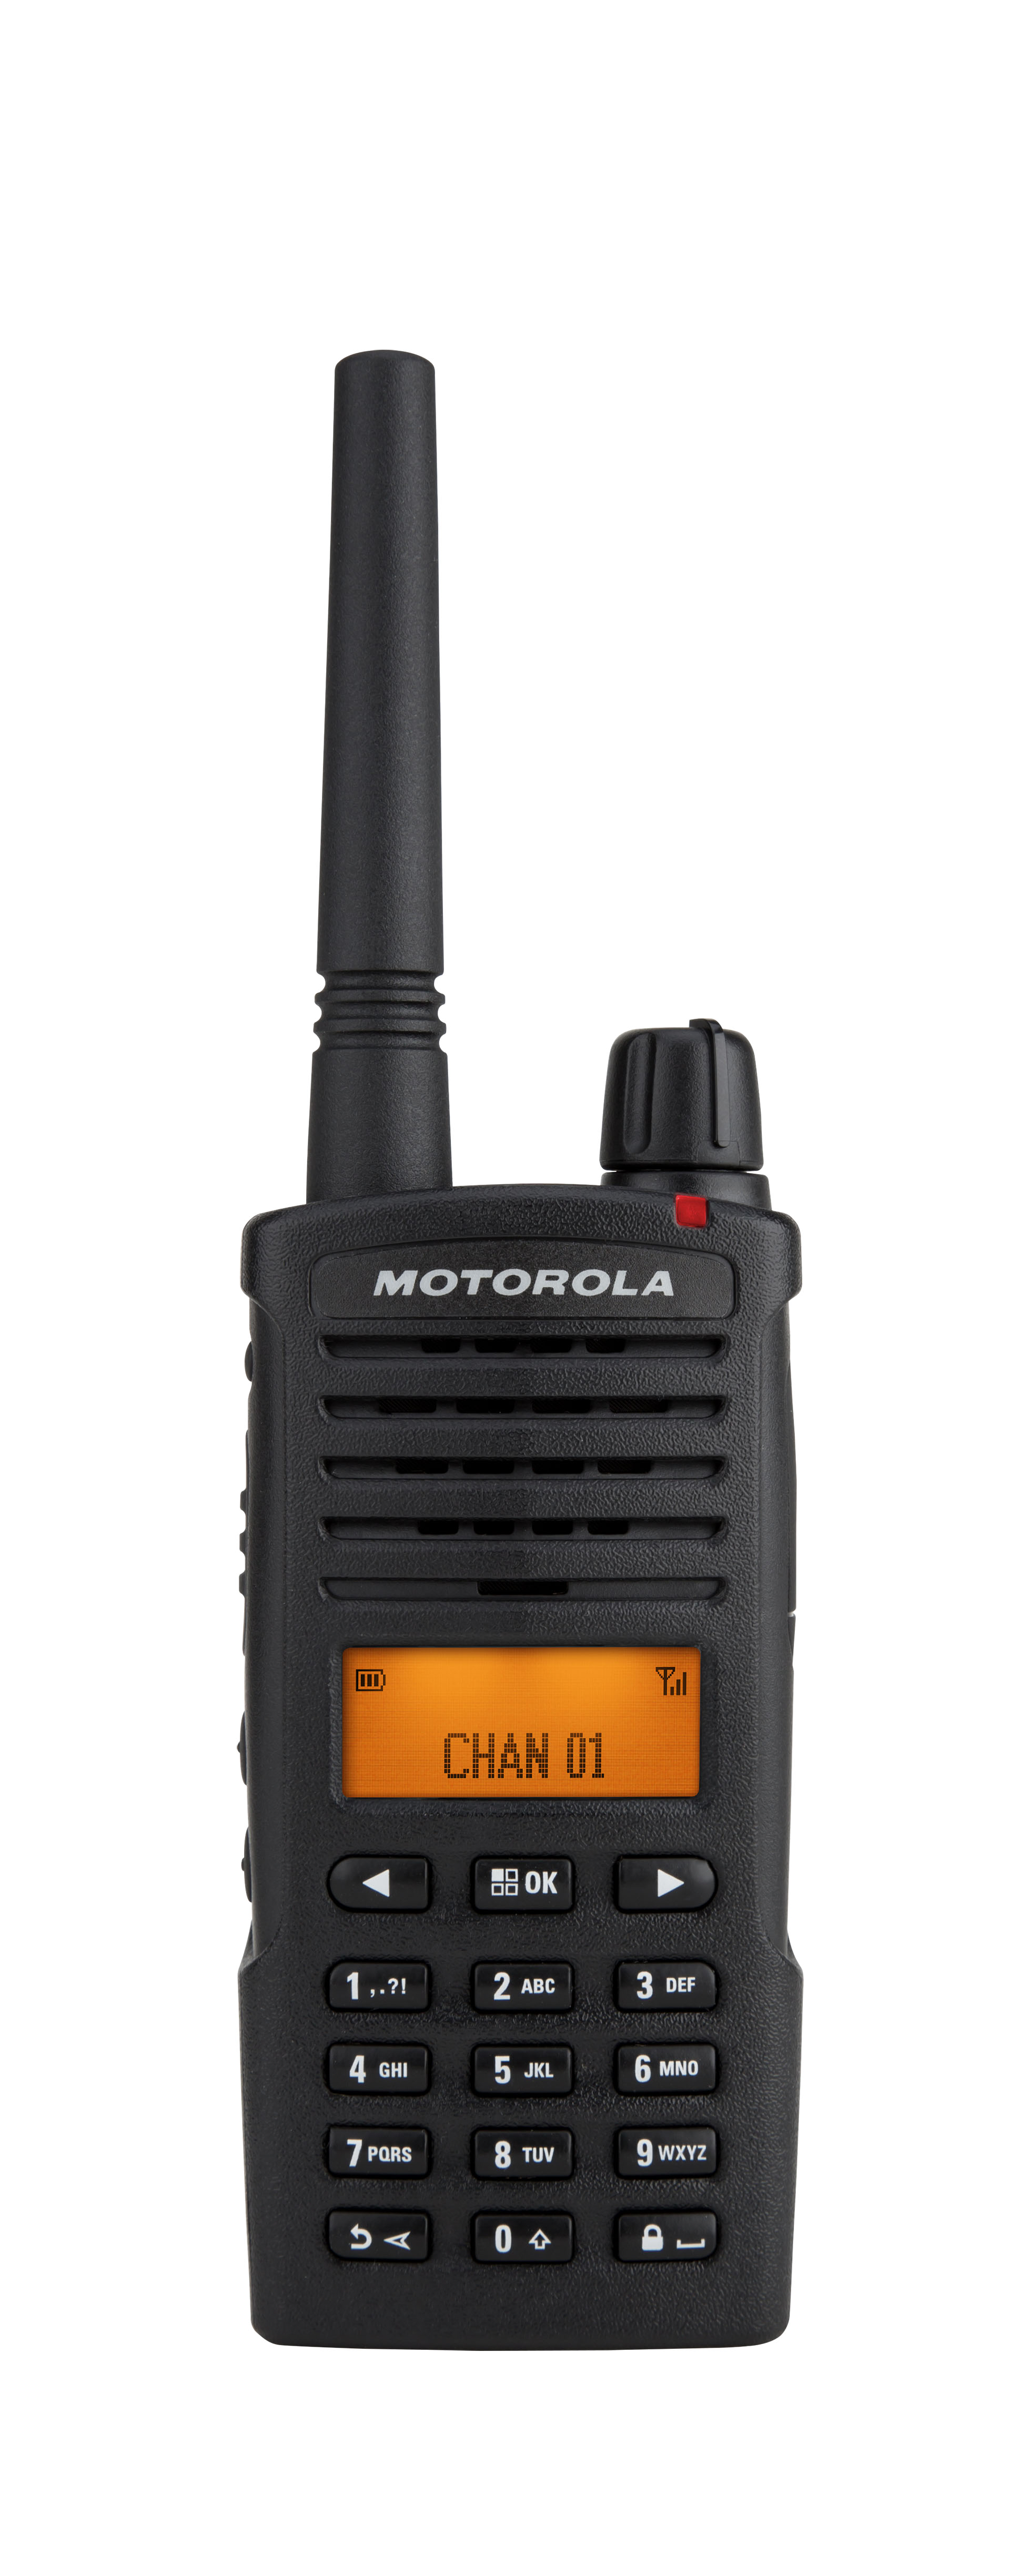 XT660d License Free Digital Two-Way Radio